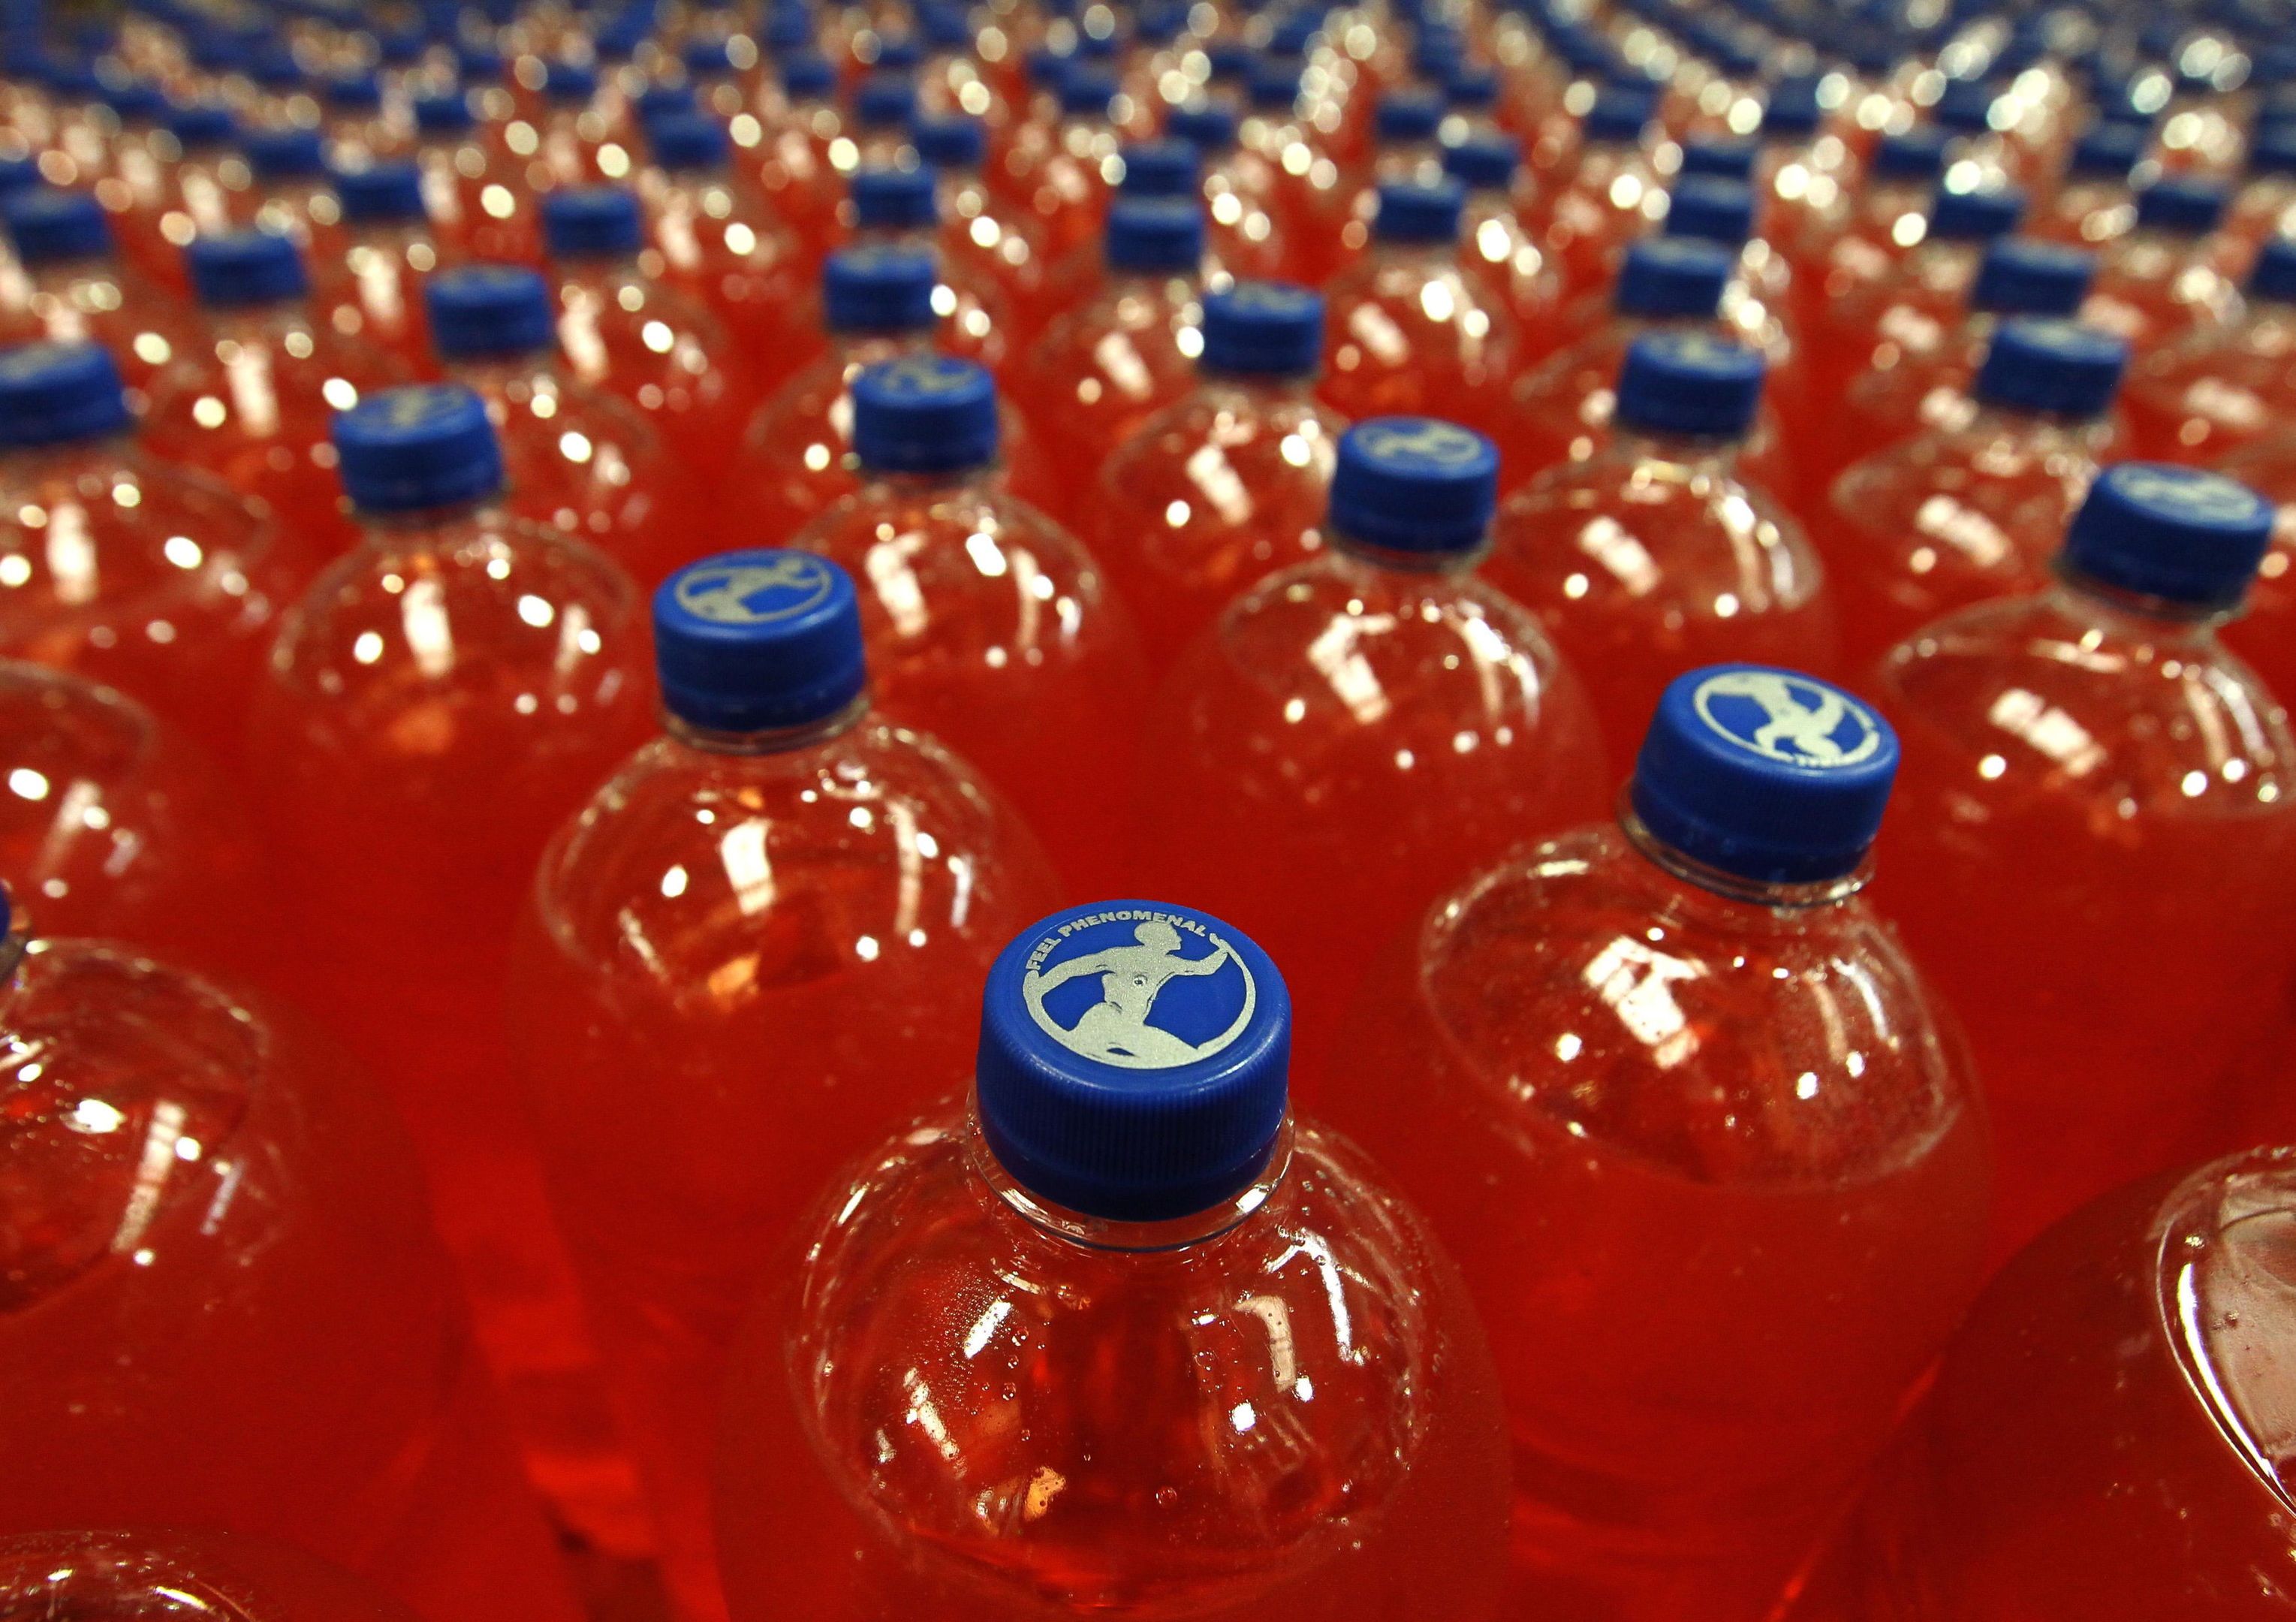 AG Barr is to reduce the sugar content in some of its best known brands, including Irn-Bru, ahead of a government crackdown on the fizzy drinks industry. (Andrew Milligan/PA Wire)